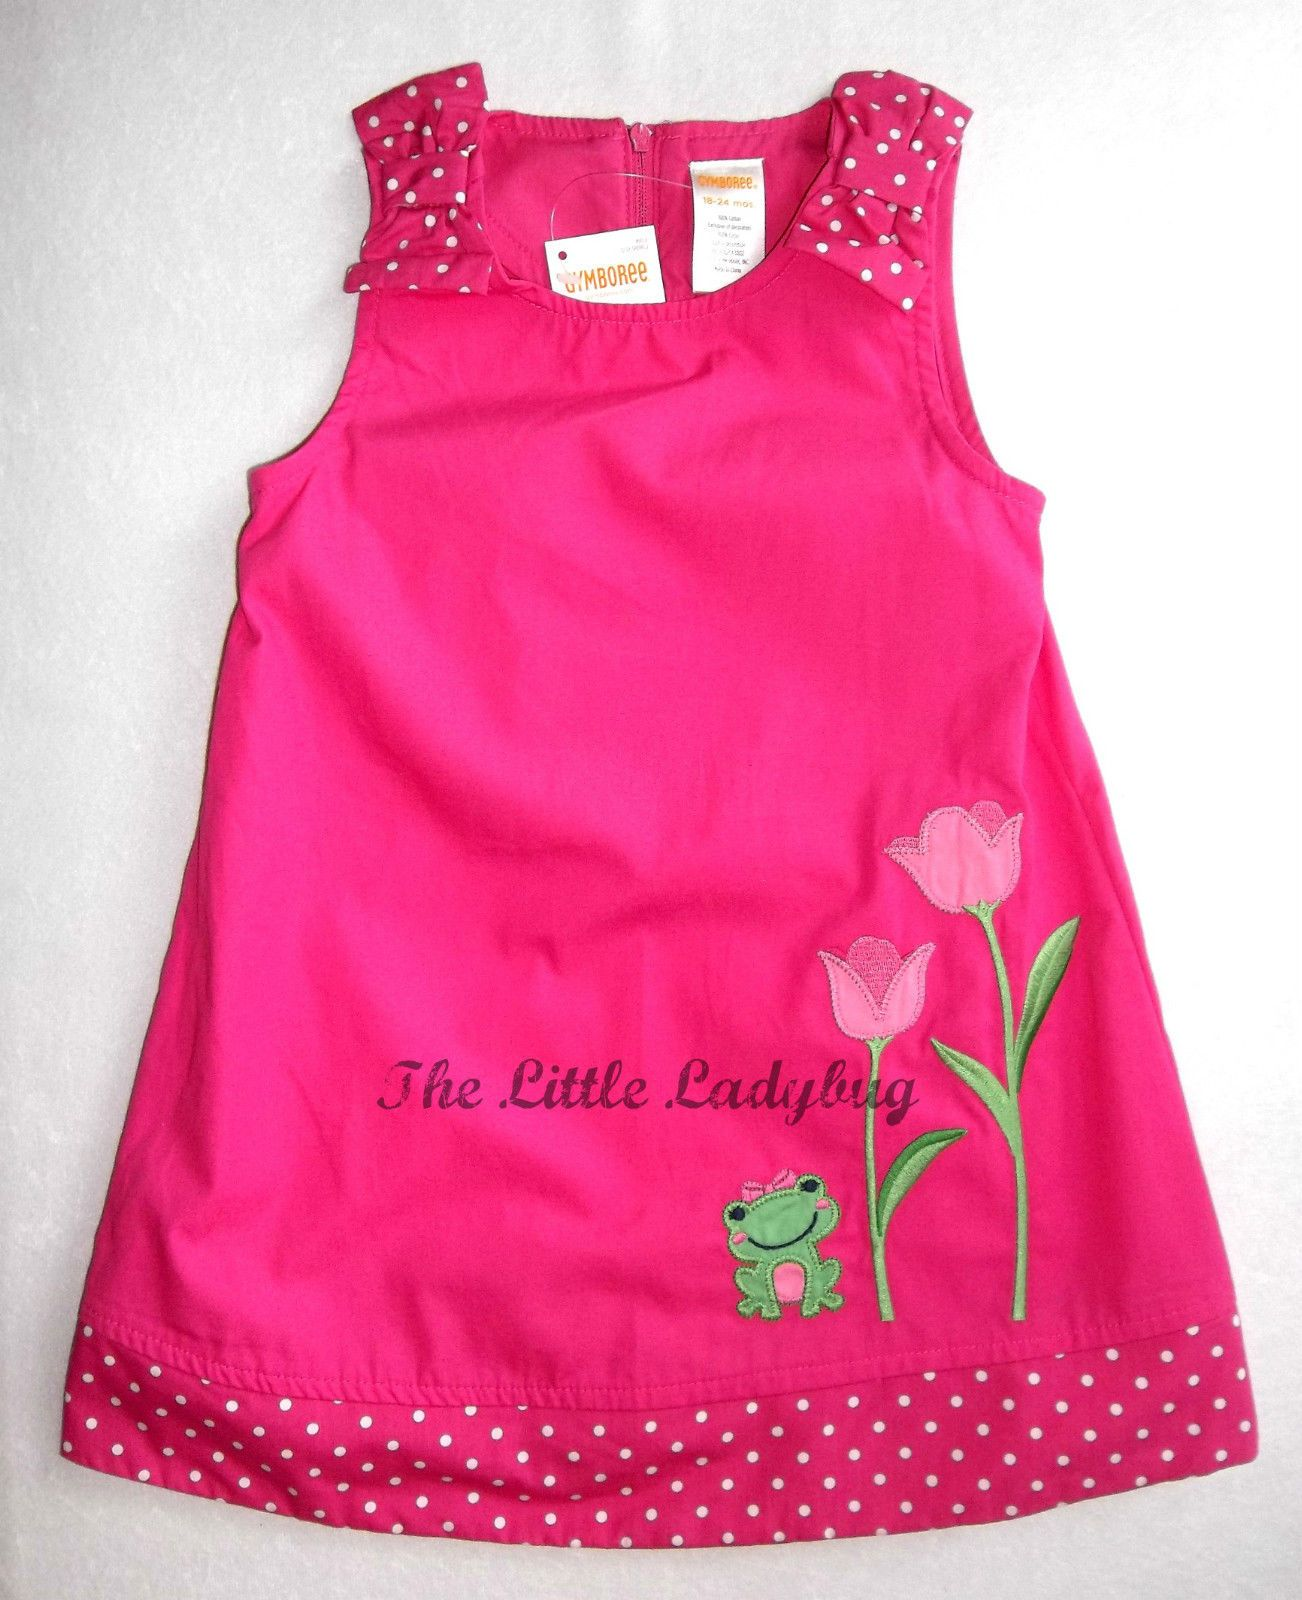 NWT Baby Lulu floral ruffle dress 100/% cotton 2T or 3T